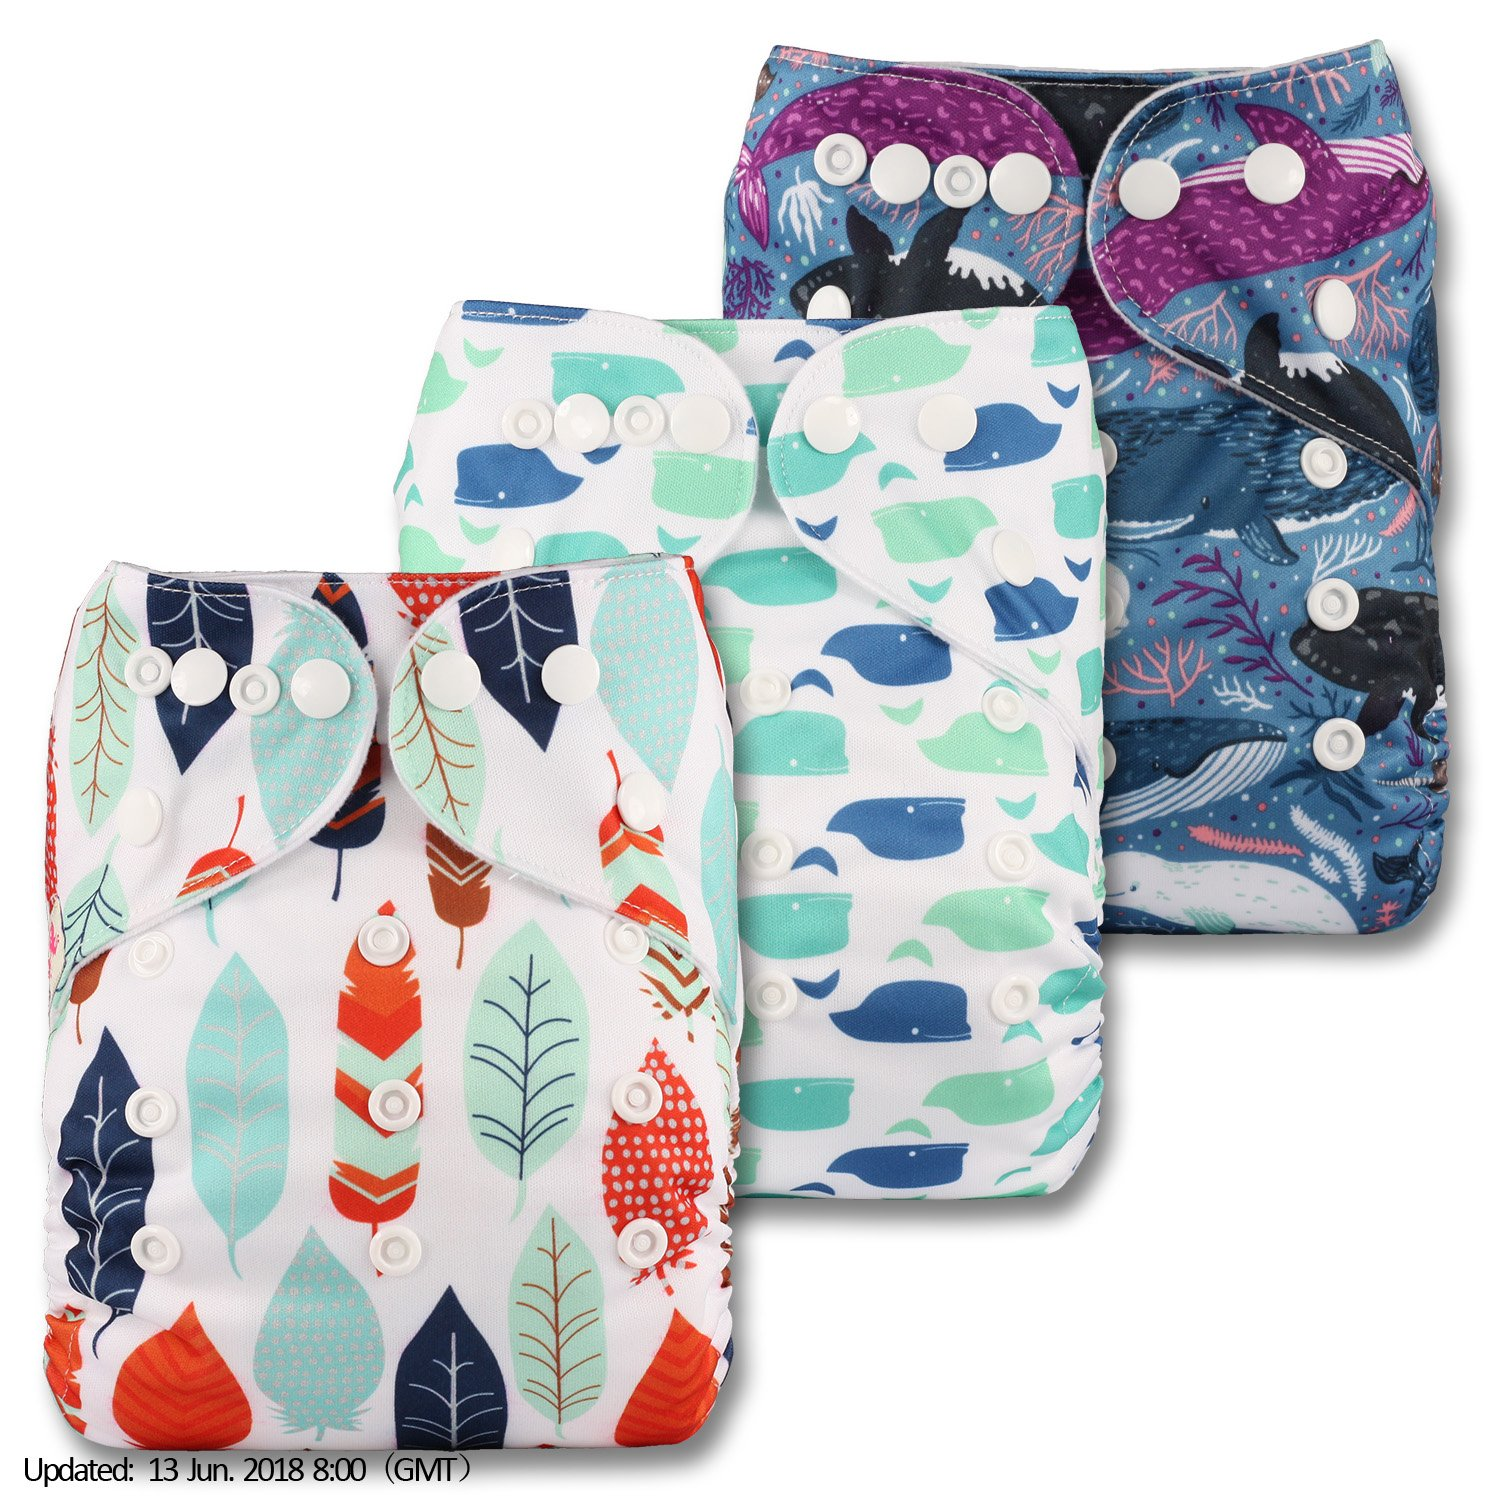 Littles & Bloomz, Reusable Pocket Cloth Nappy, Fastener: Popper, Set of 3, Patterns 317, With 6 Bamboo Inserts